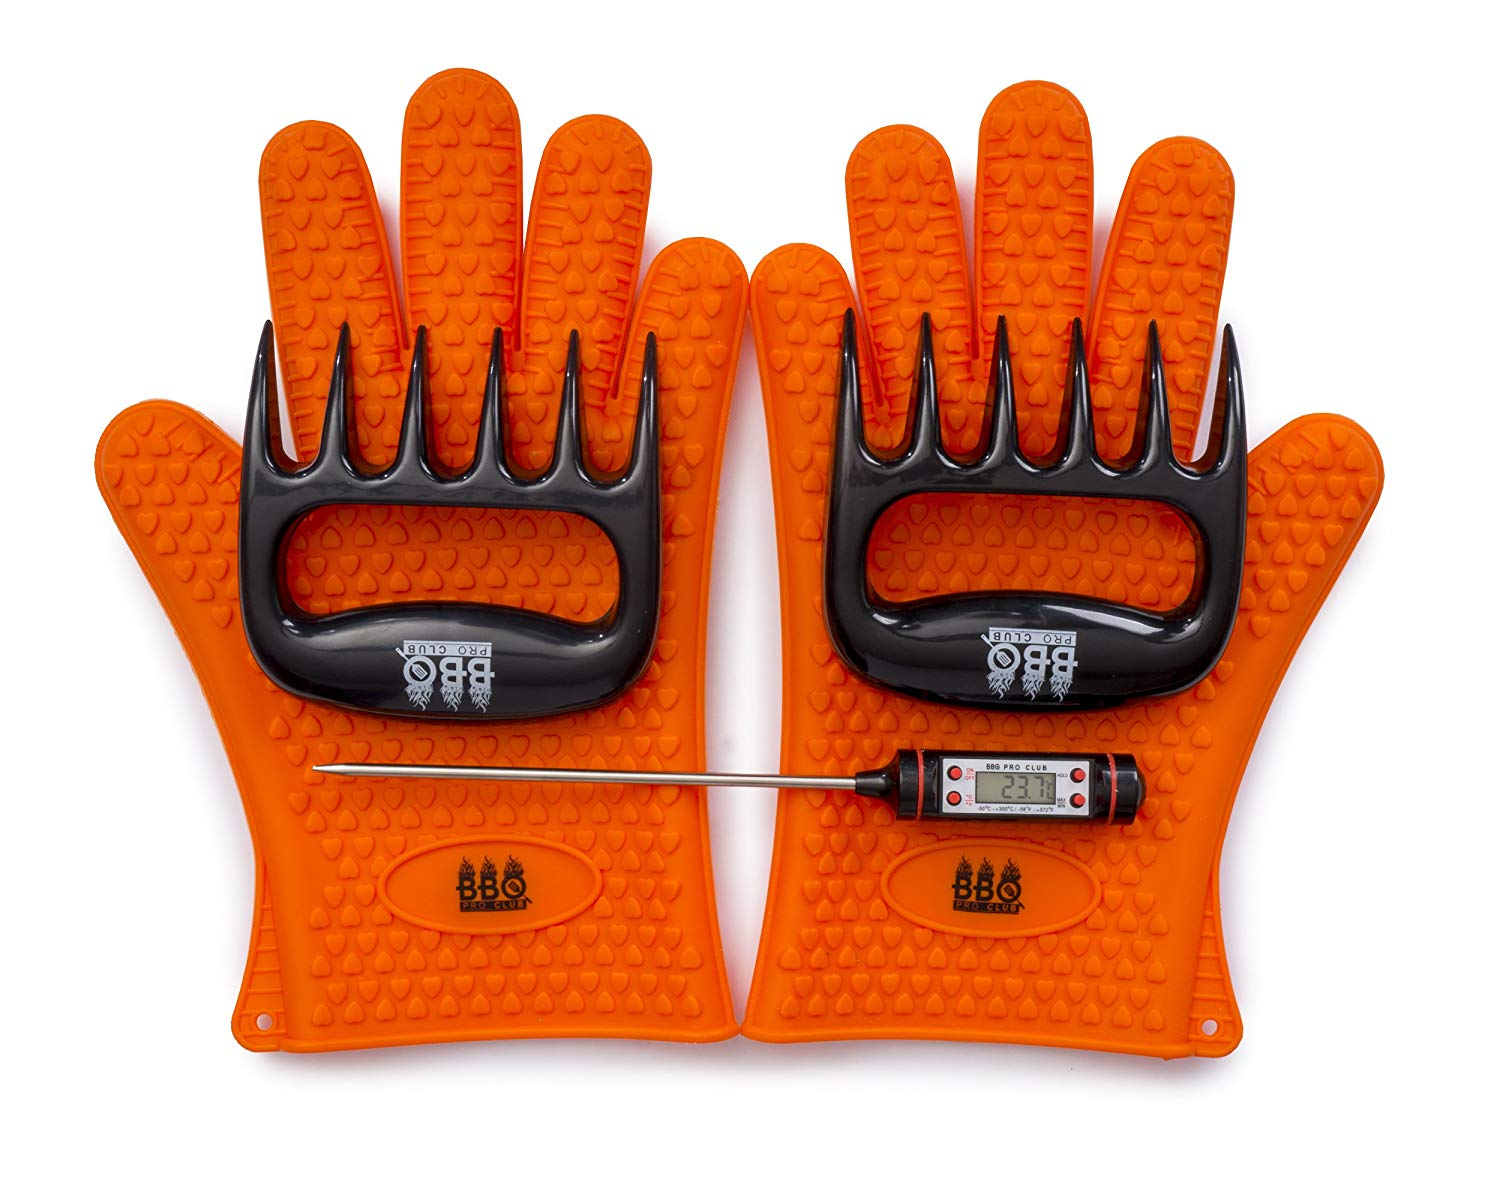 BBQ grilling set with gloves and thermometer.